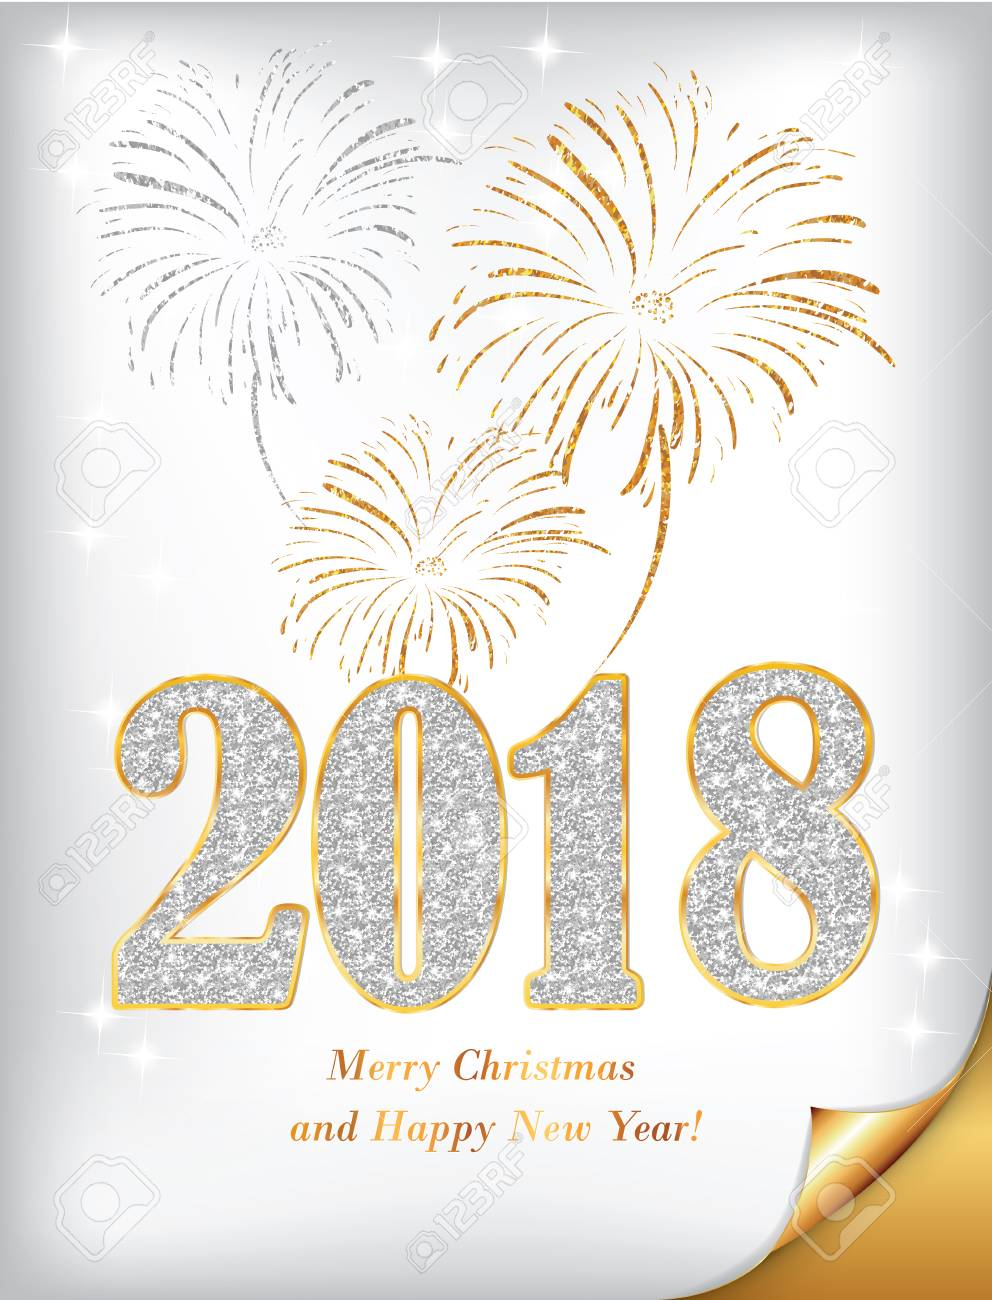 Merry christmas and a happy new year 2018 silver background merry christmas and a happy new year 2018 silver background for holidays season greeting m4hsunfo